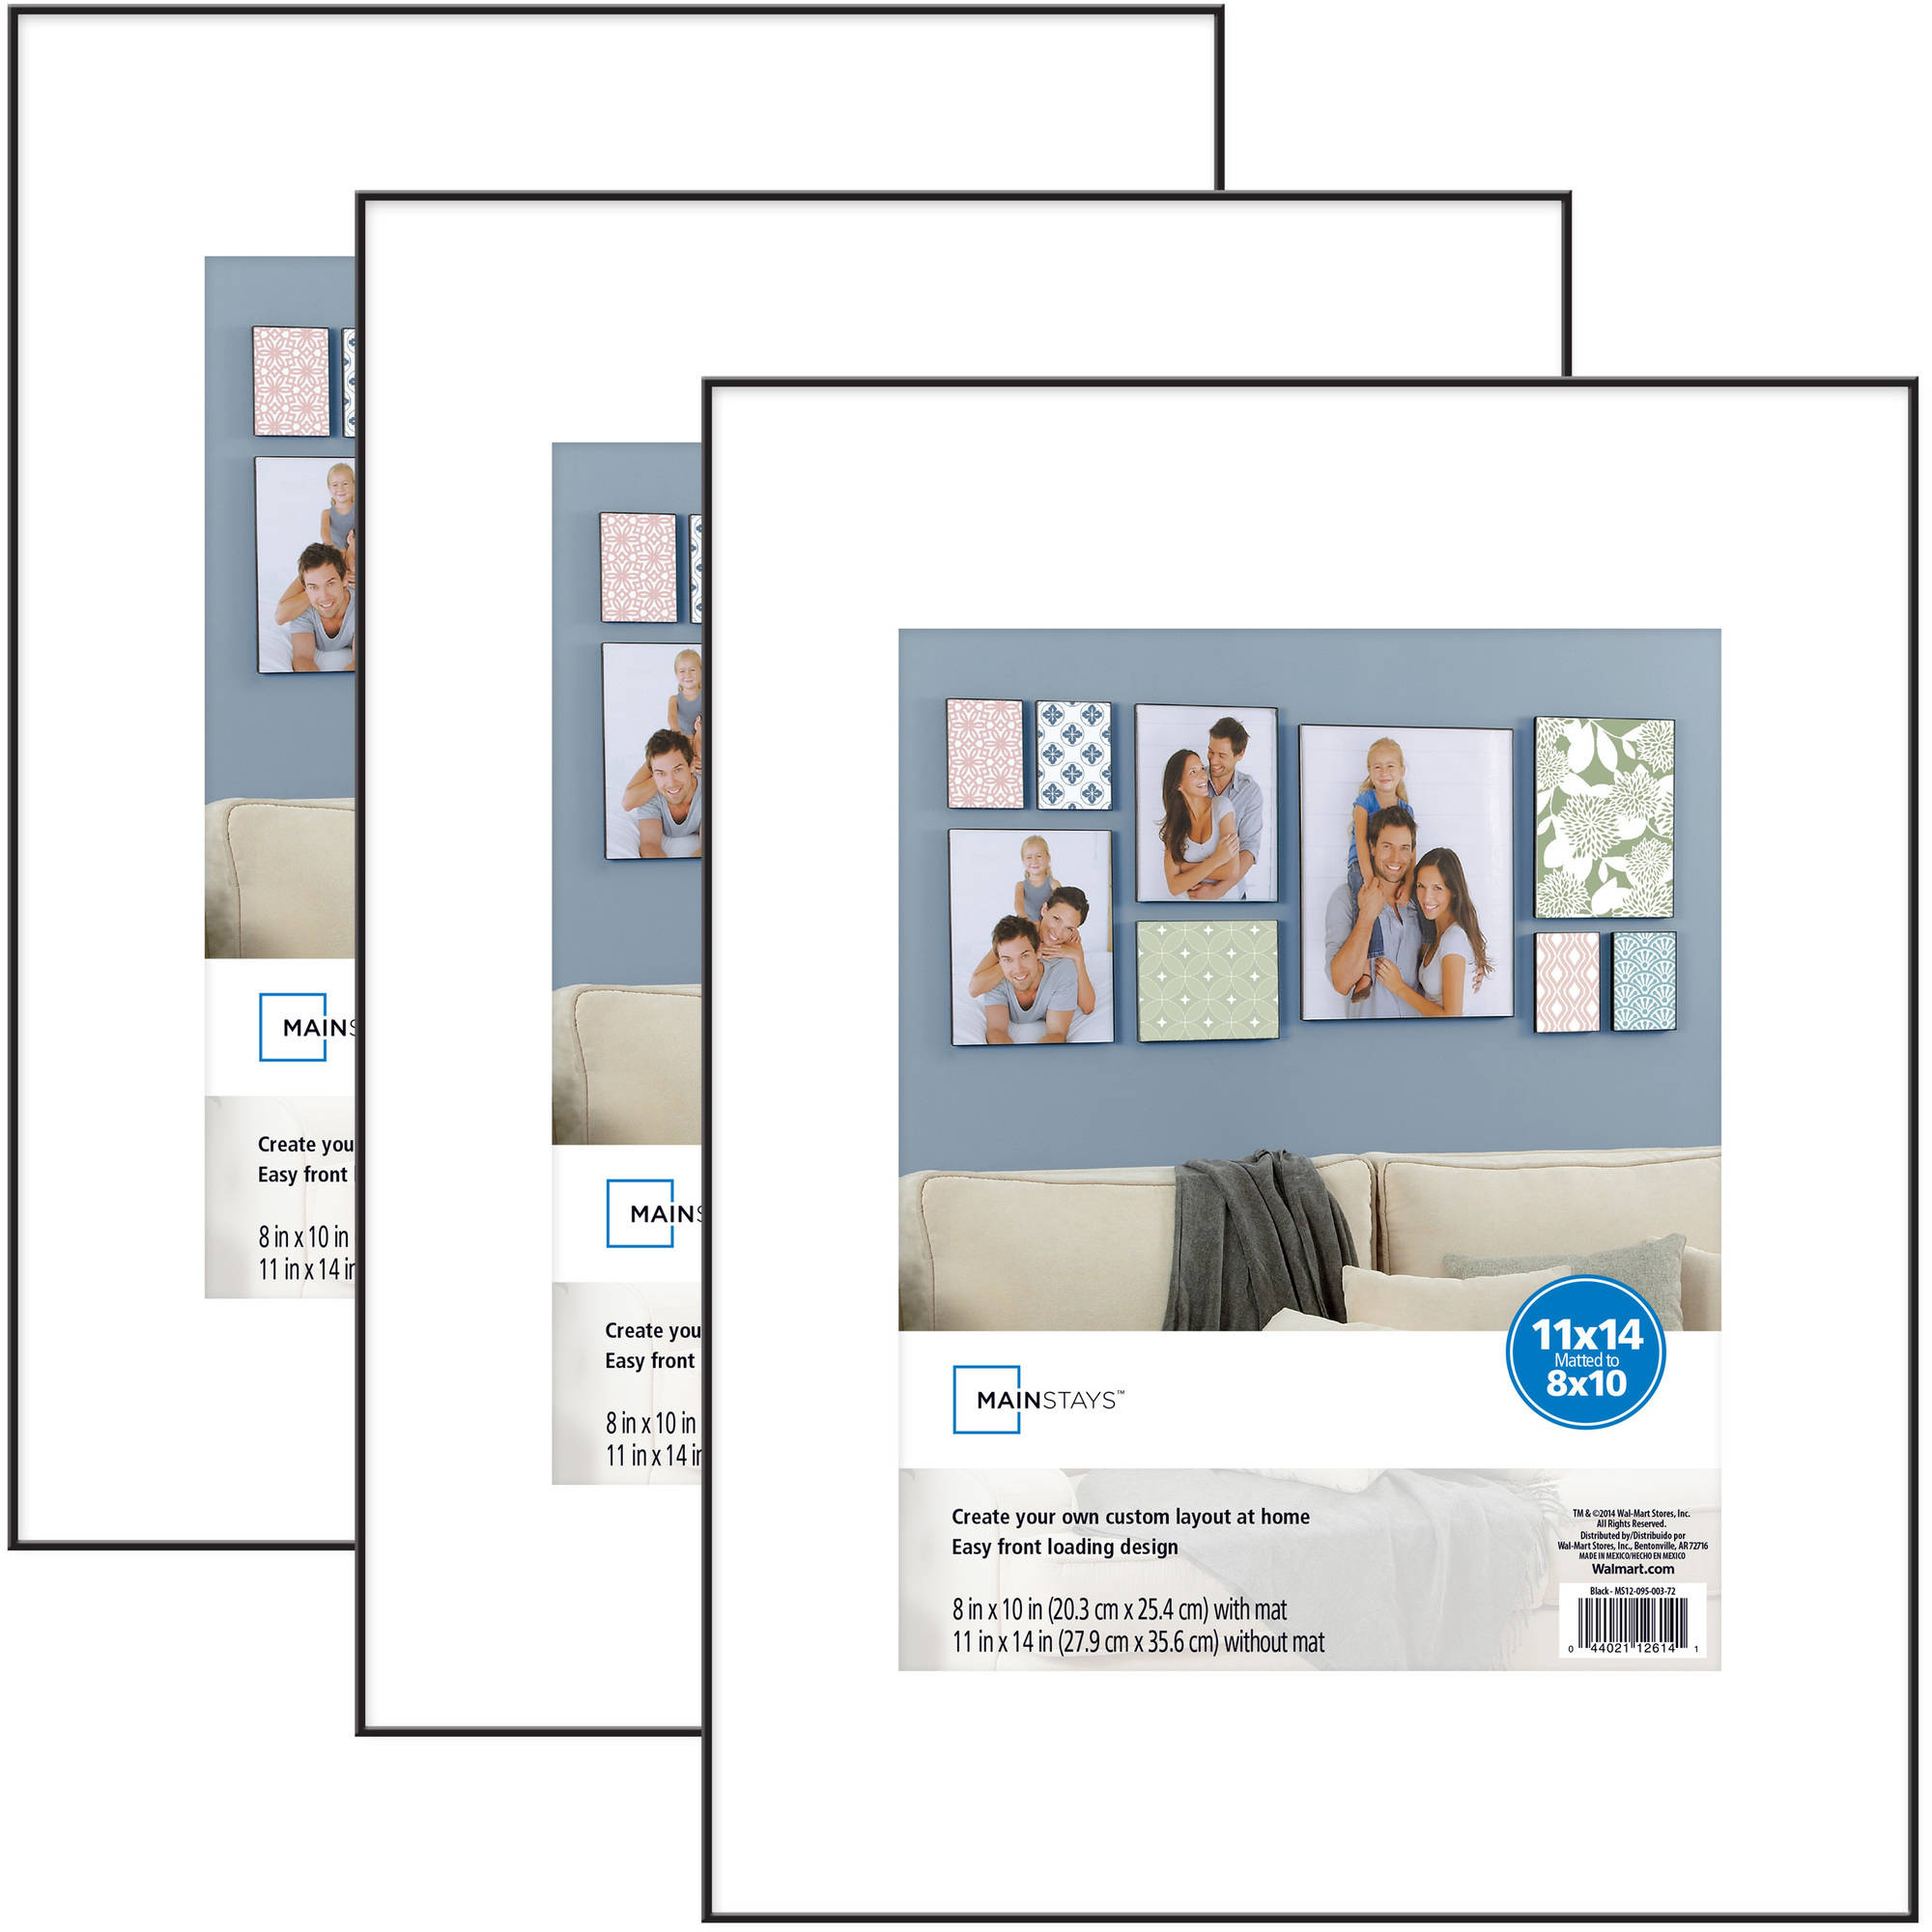 Mainstays 11x14 matted to 8x10 Format Picture Frame, Set of 3